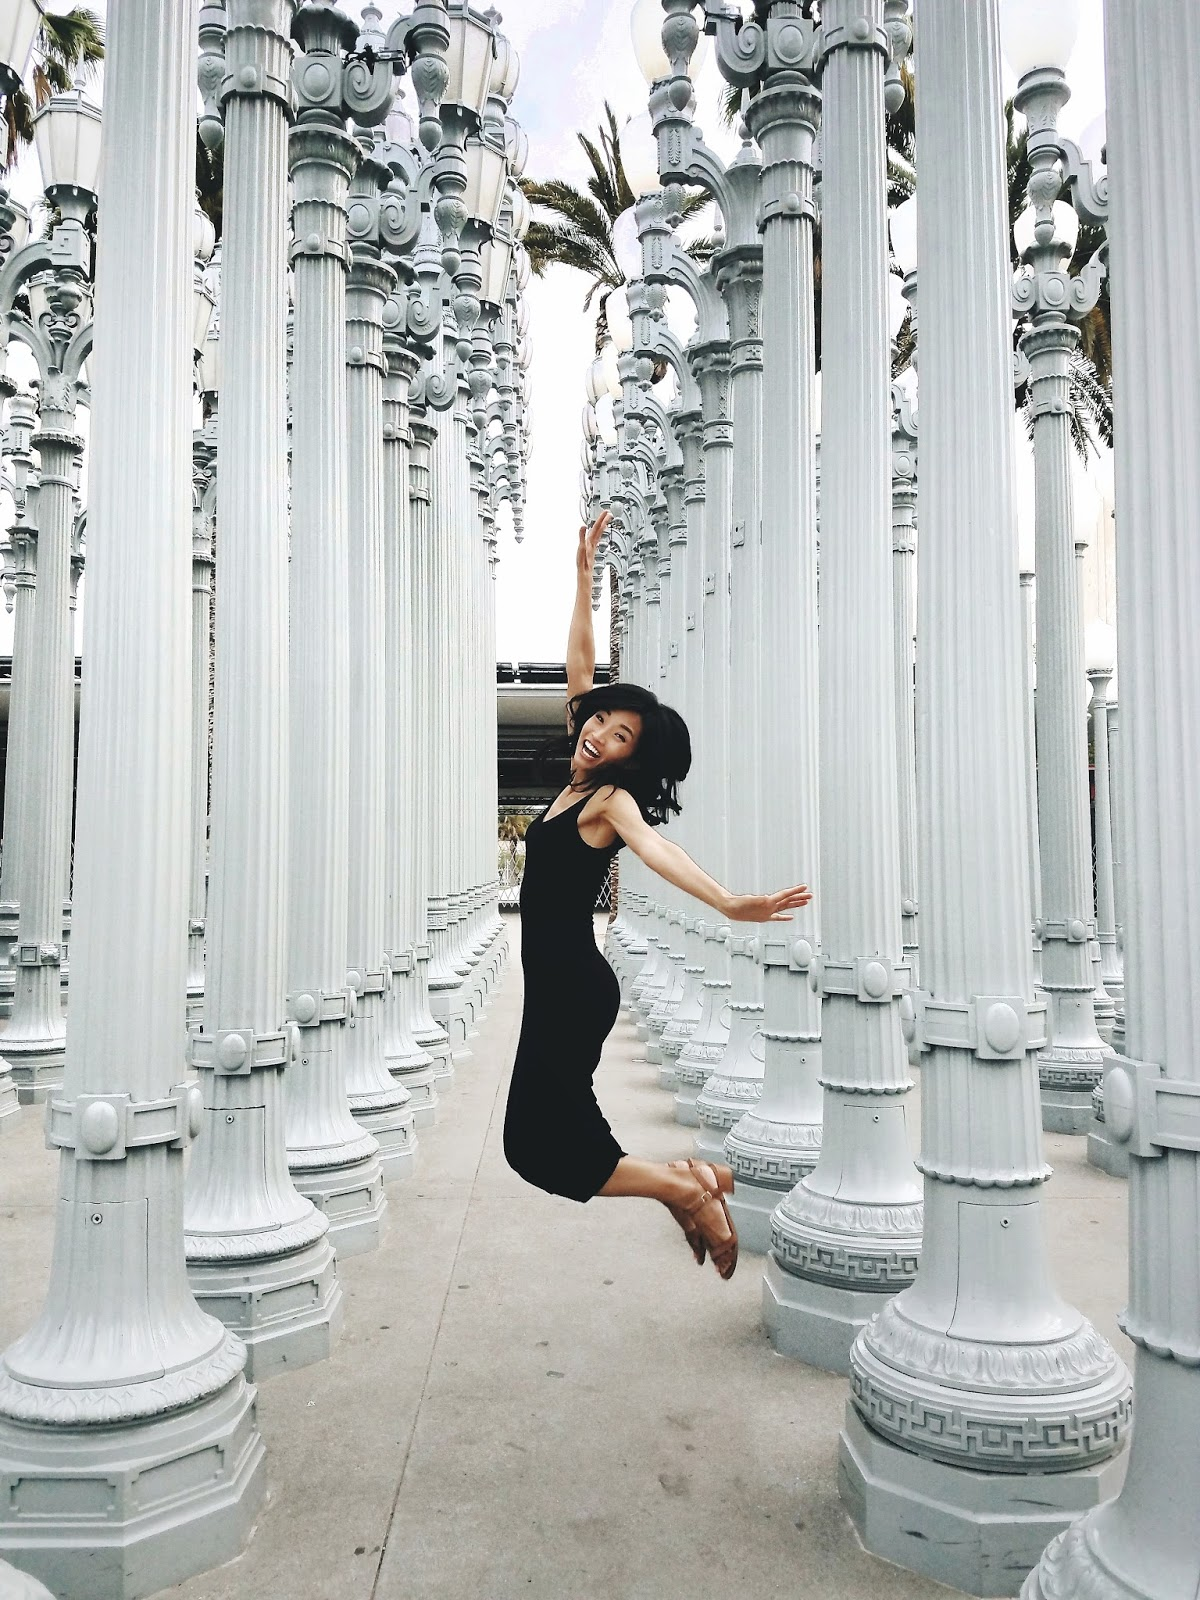 The Jen Project's Jen playing tourist at LACMA, jumping in front of the Urban Lights exhibit.